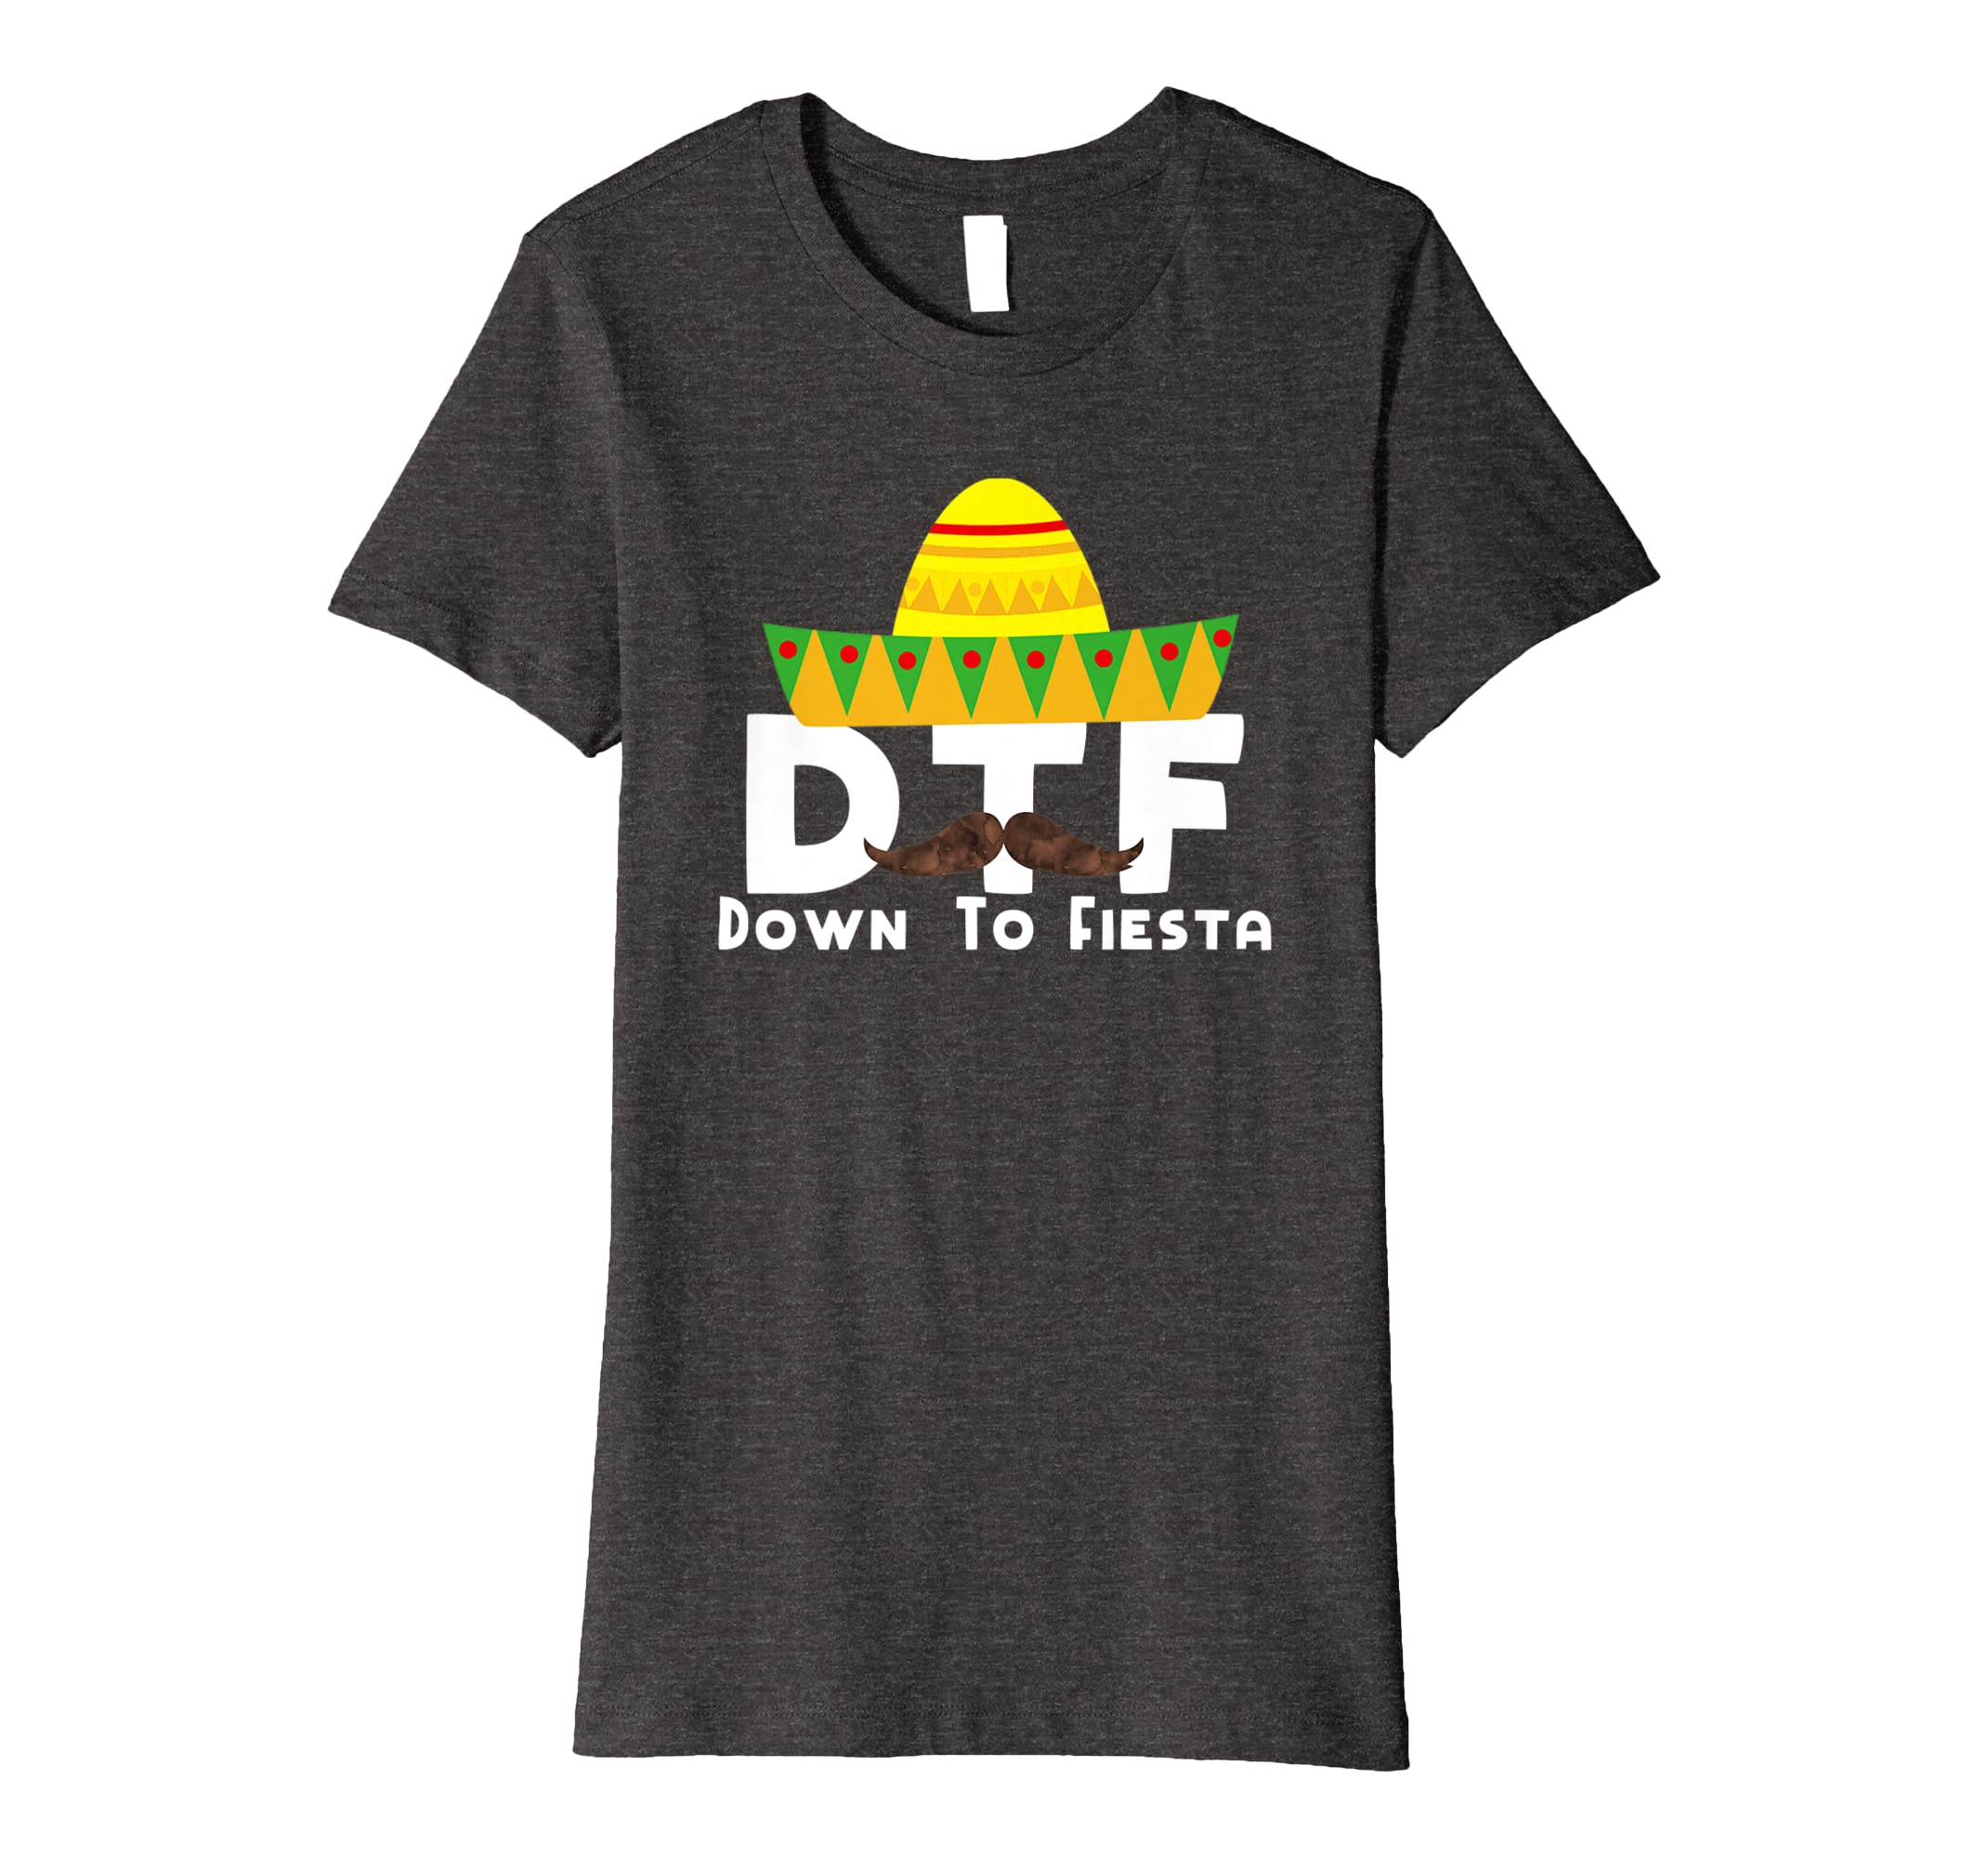 3acaa44e7d65c Down To Fiesta - Cinco de Mayo Costume Party Outfit T Shirt